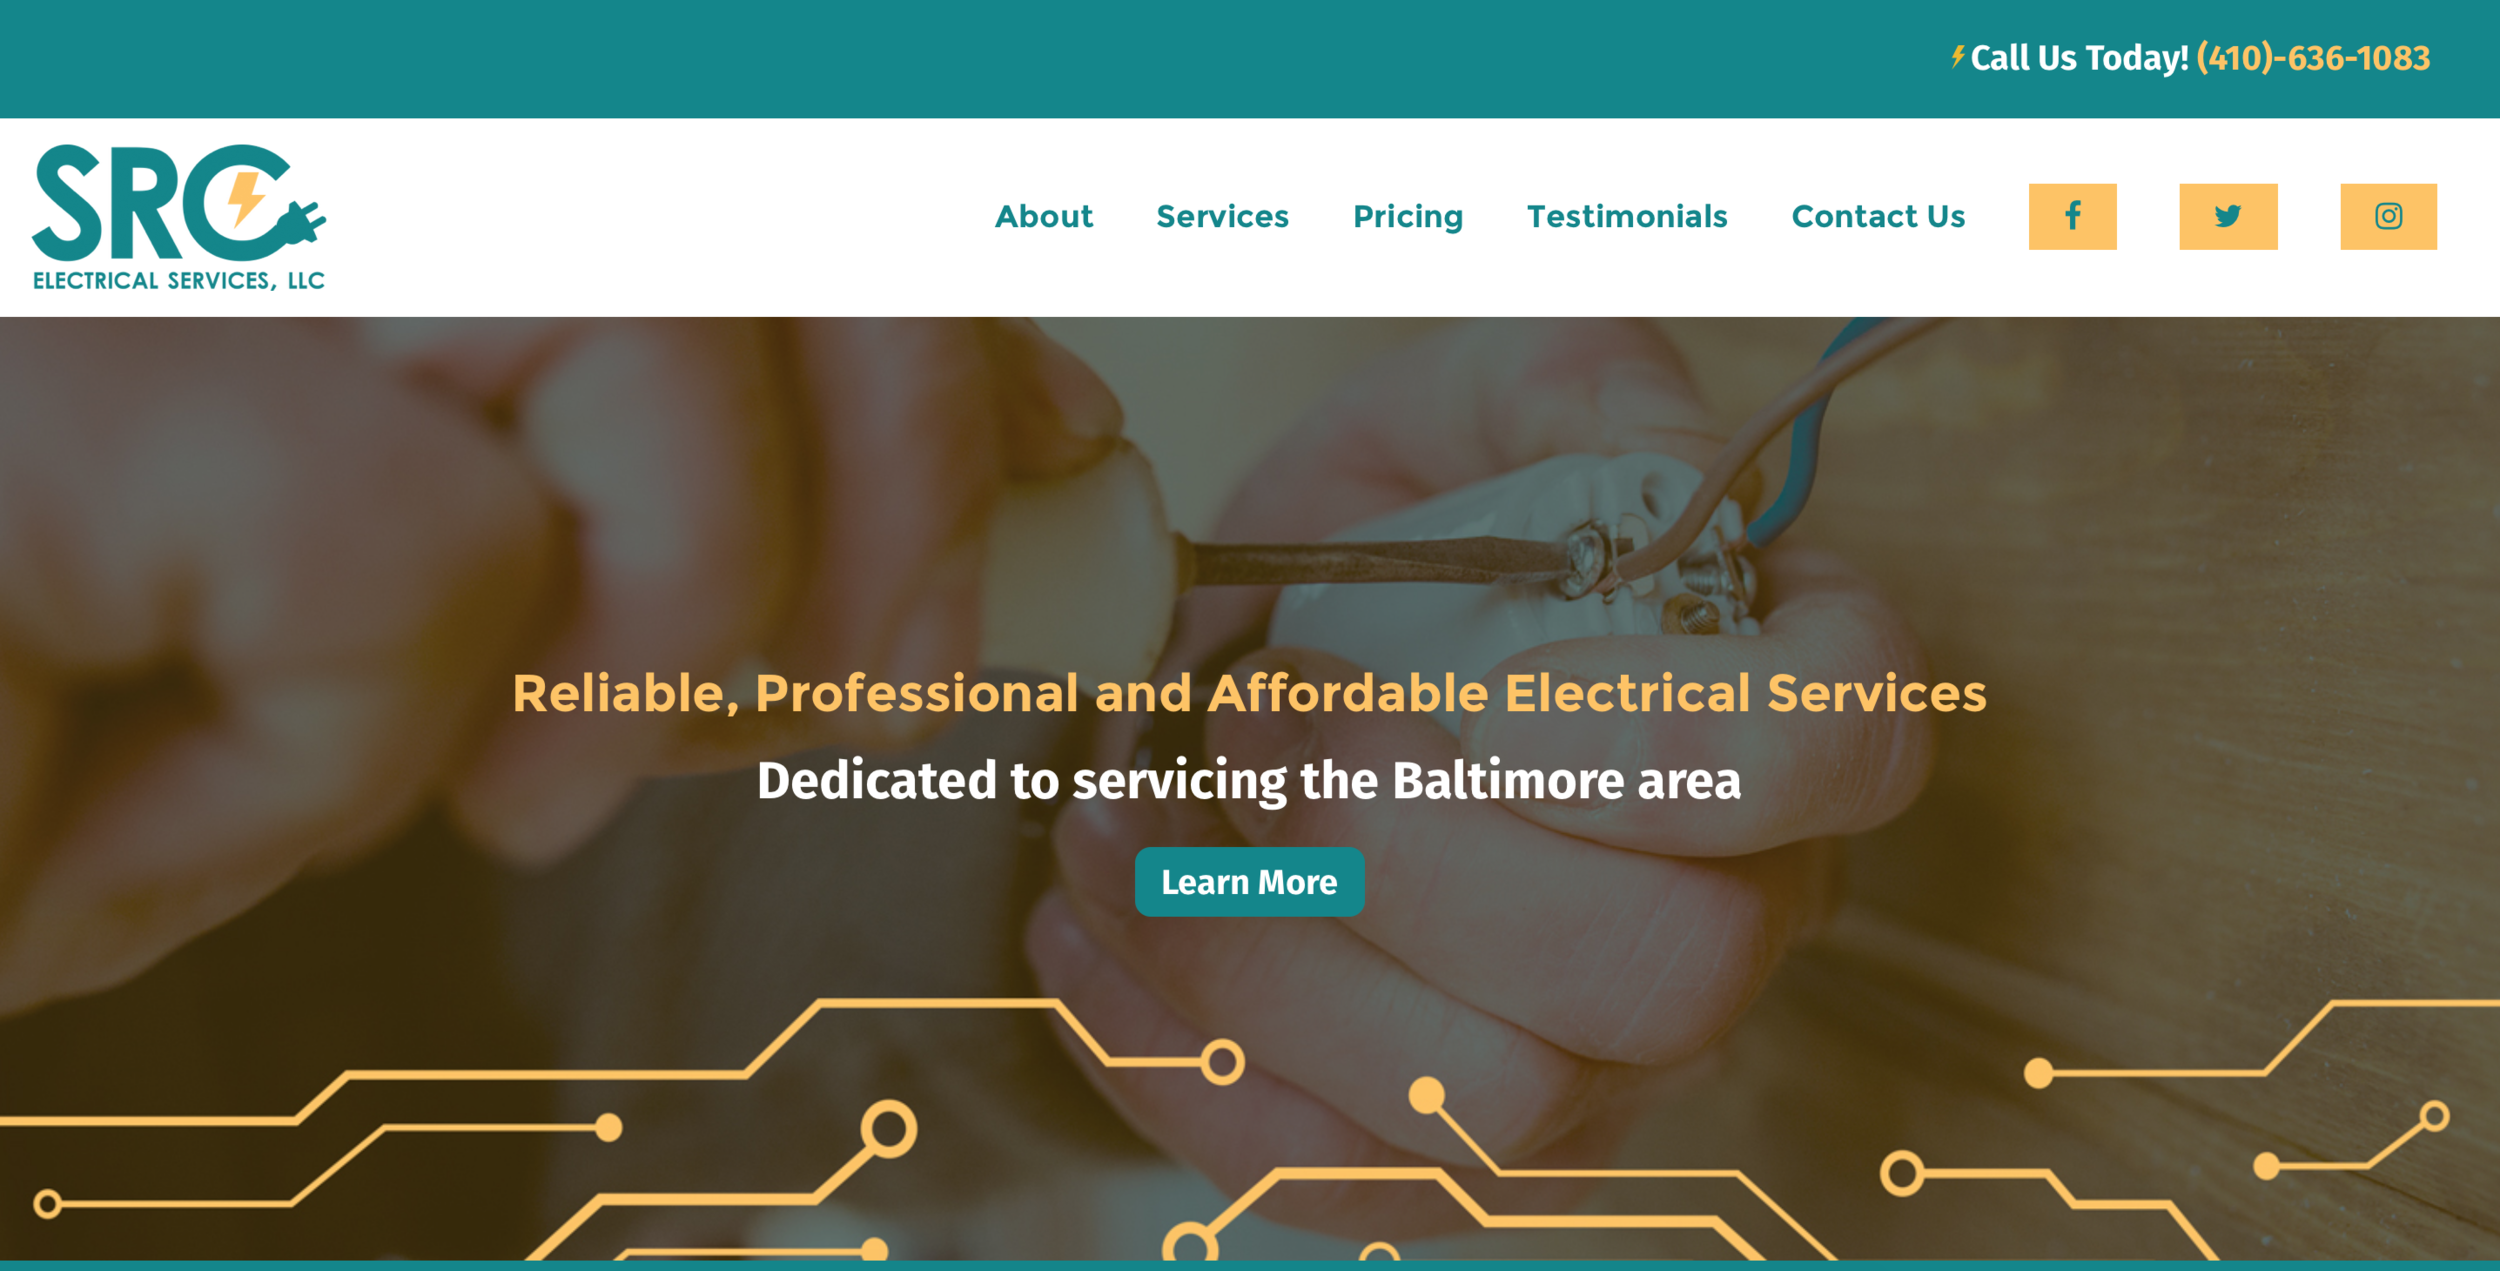 SRC ELECTRICAL SERVICES, LLC